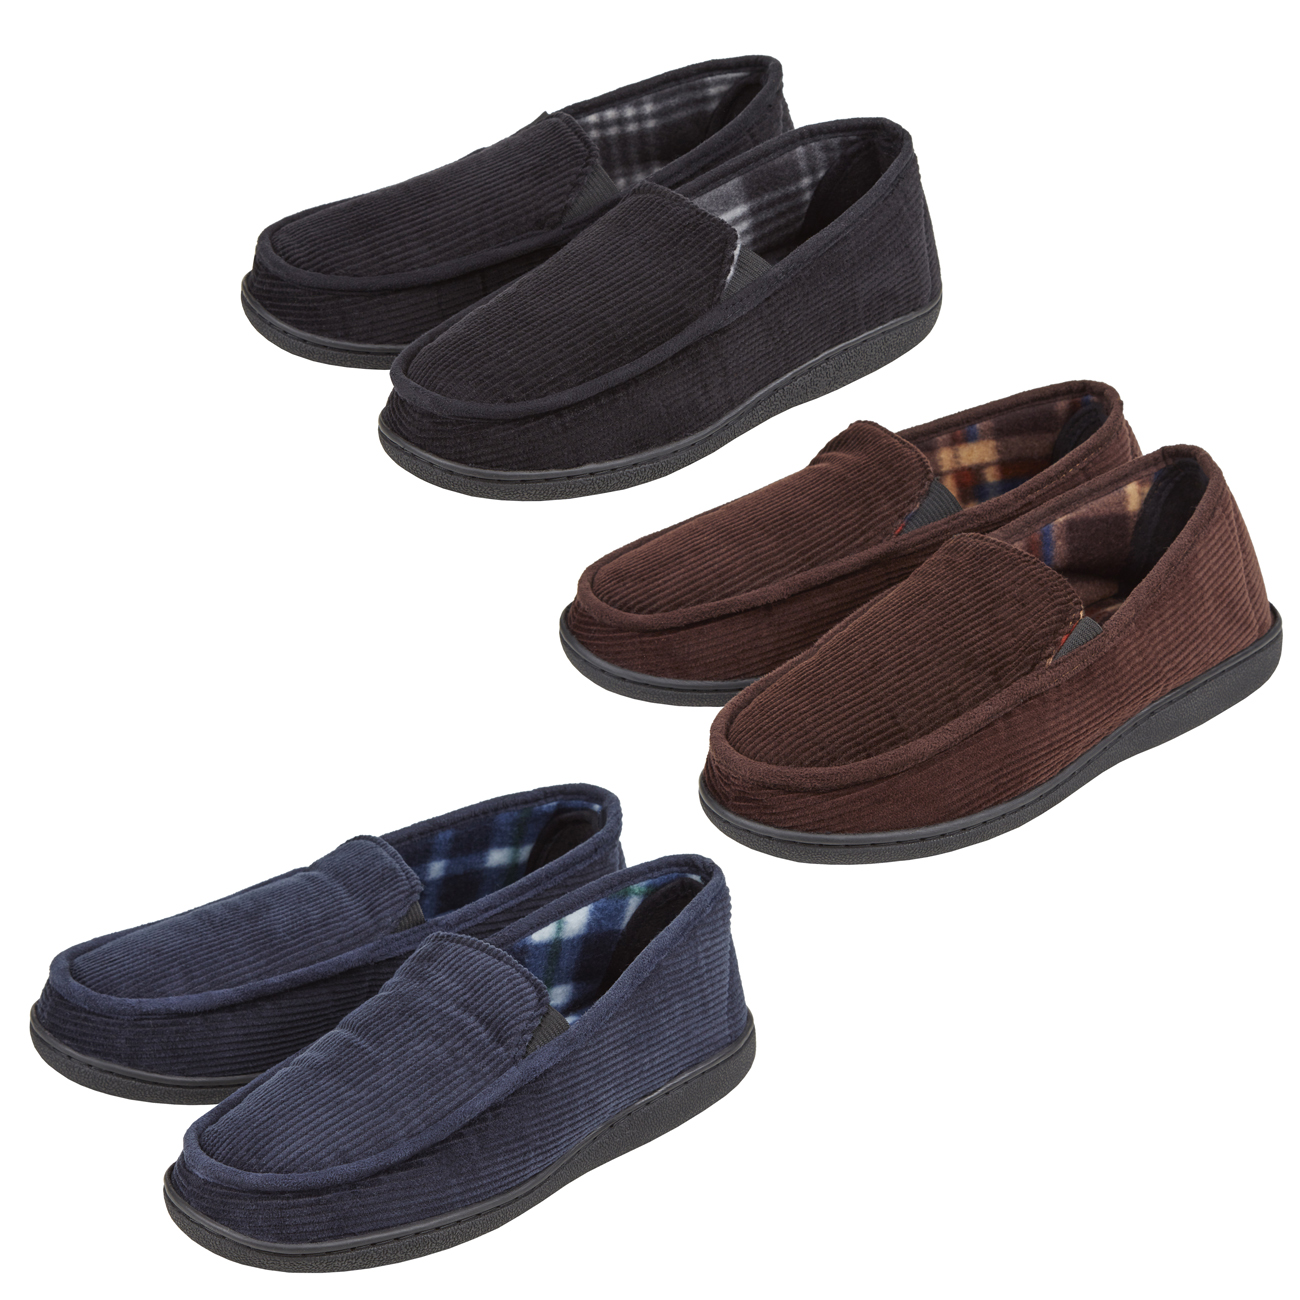 2264b0f64633 Mens Mule Closed Back Slippers Pull On Moccasin Corduroy Memory Foam Indoor  6-11